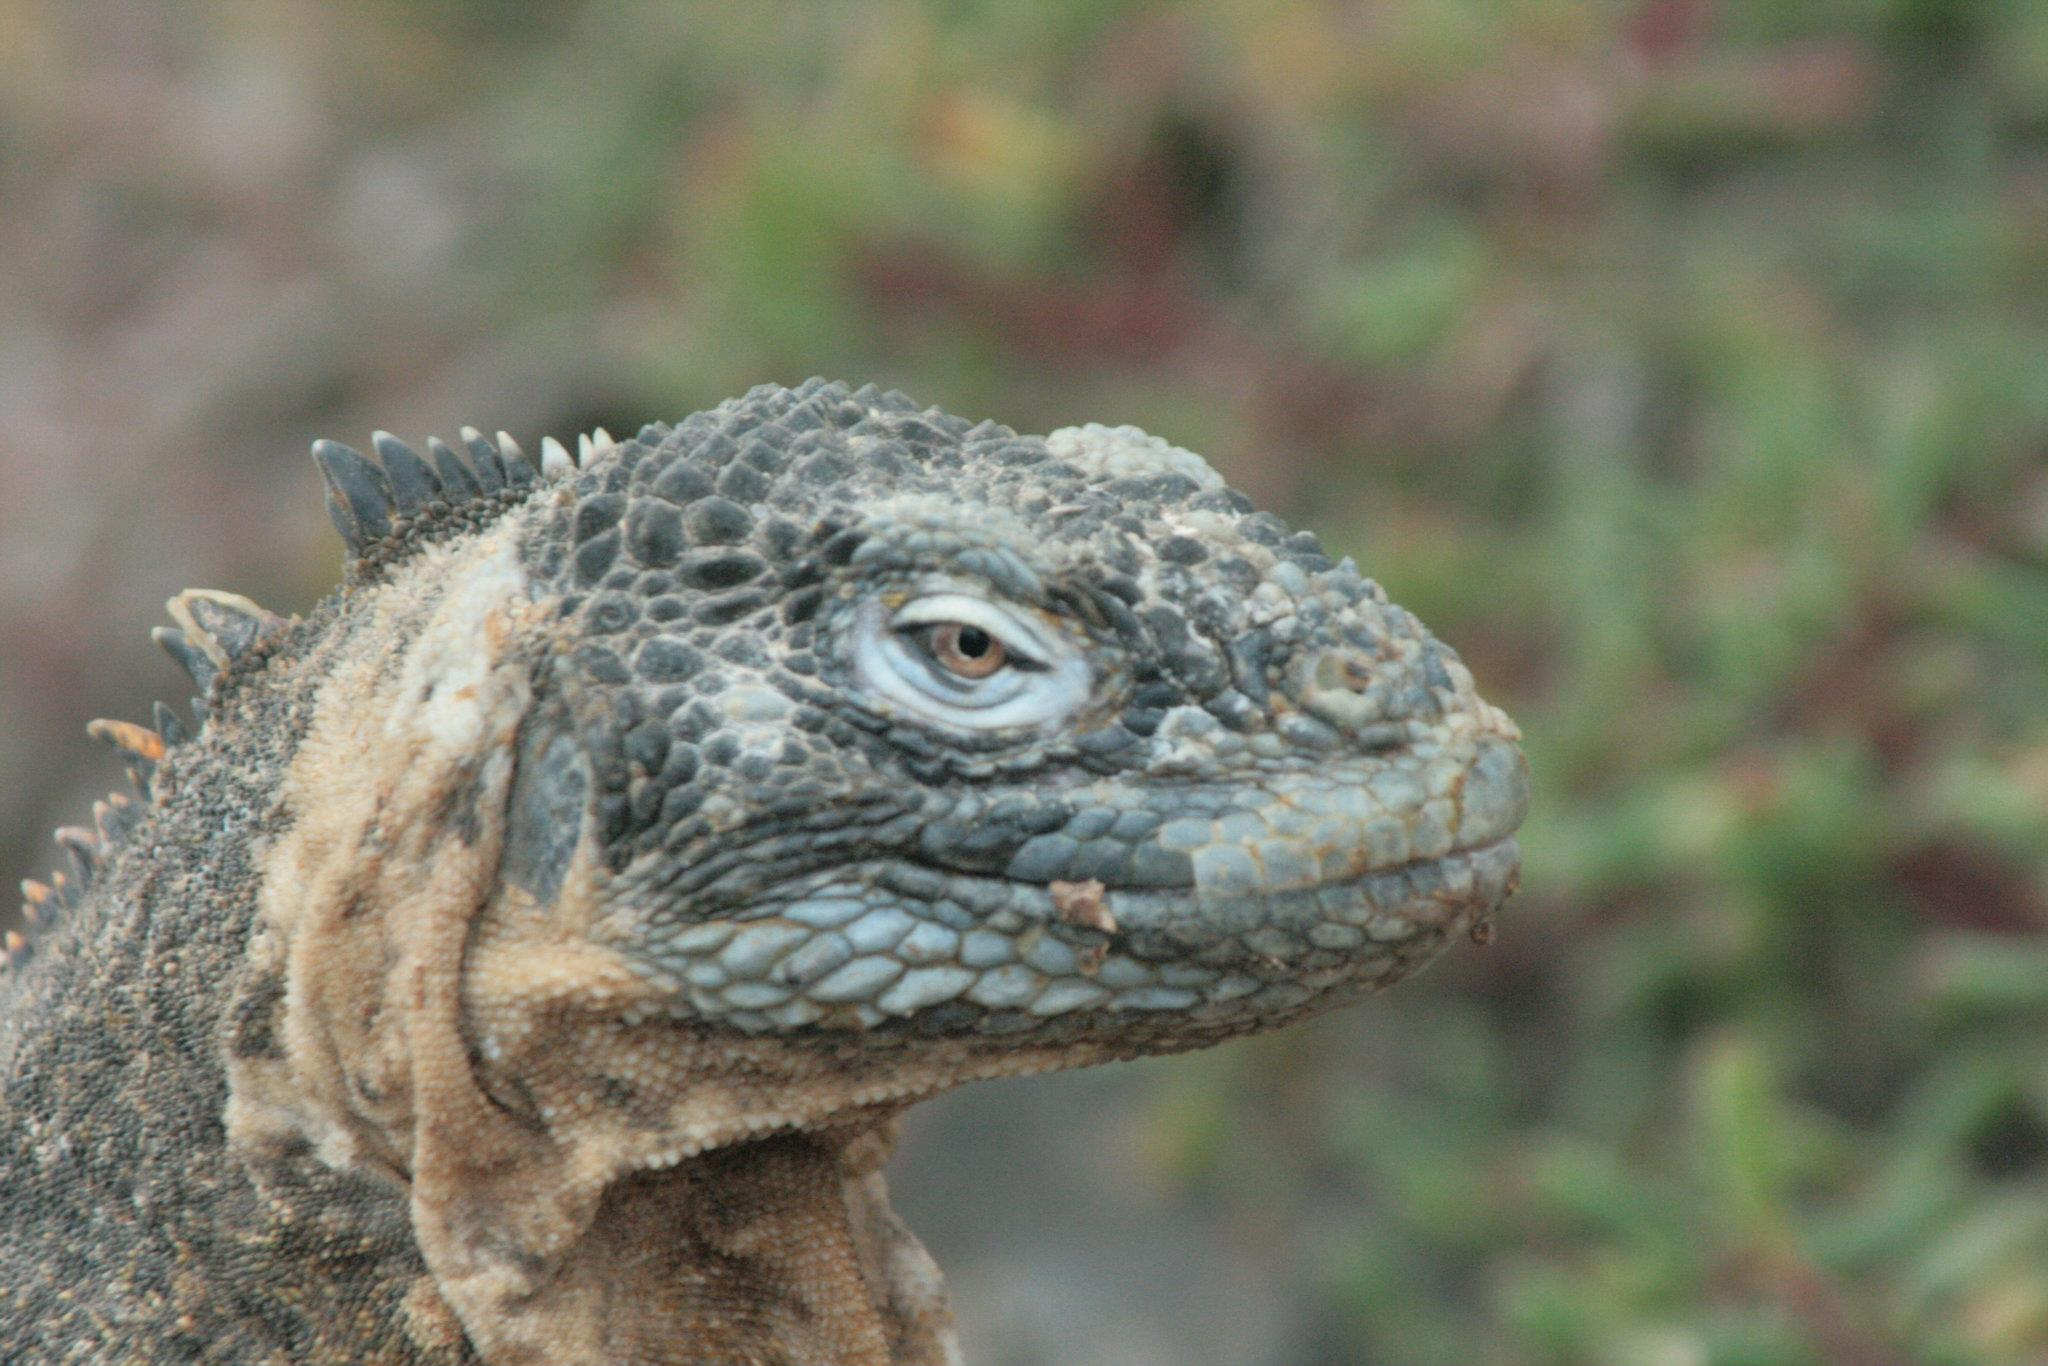 https://upload.wikimedia.org/wikipedia/commons/4/45/Galapagos_Marine_Iguana_Land_Iguana_Hybrid.jpg